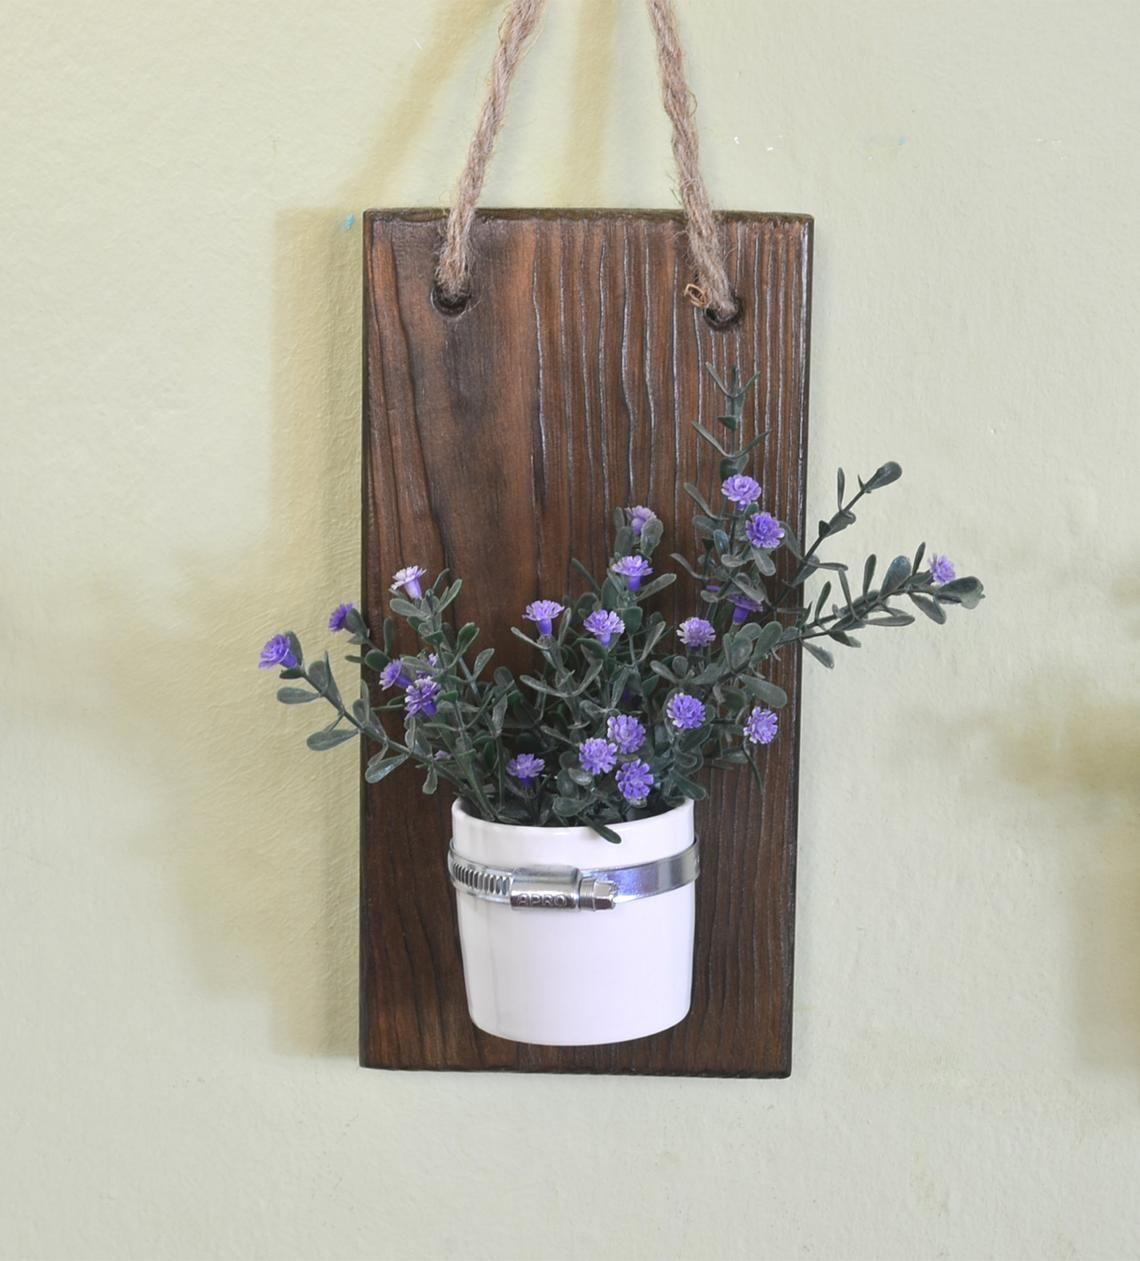 Rustic Wall Decor Wall Sconce Wall Bowl Wall Vase Wooden for Vase And Bowl Wall Decor (Image 19 of 30)